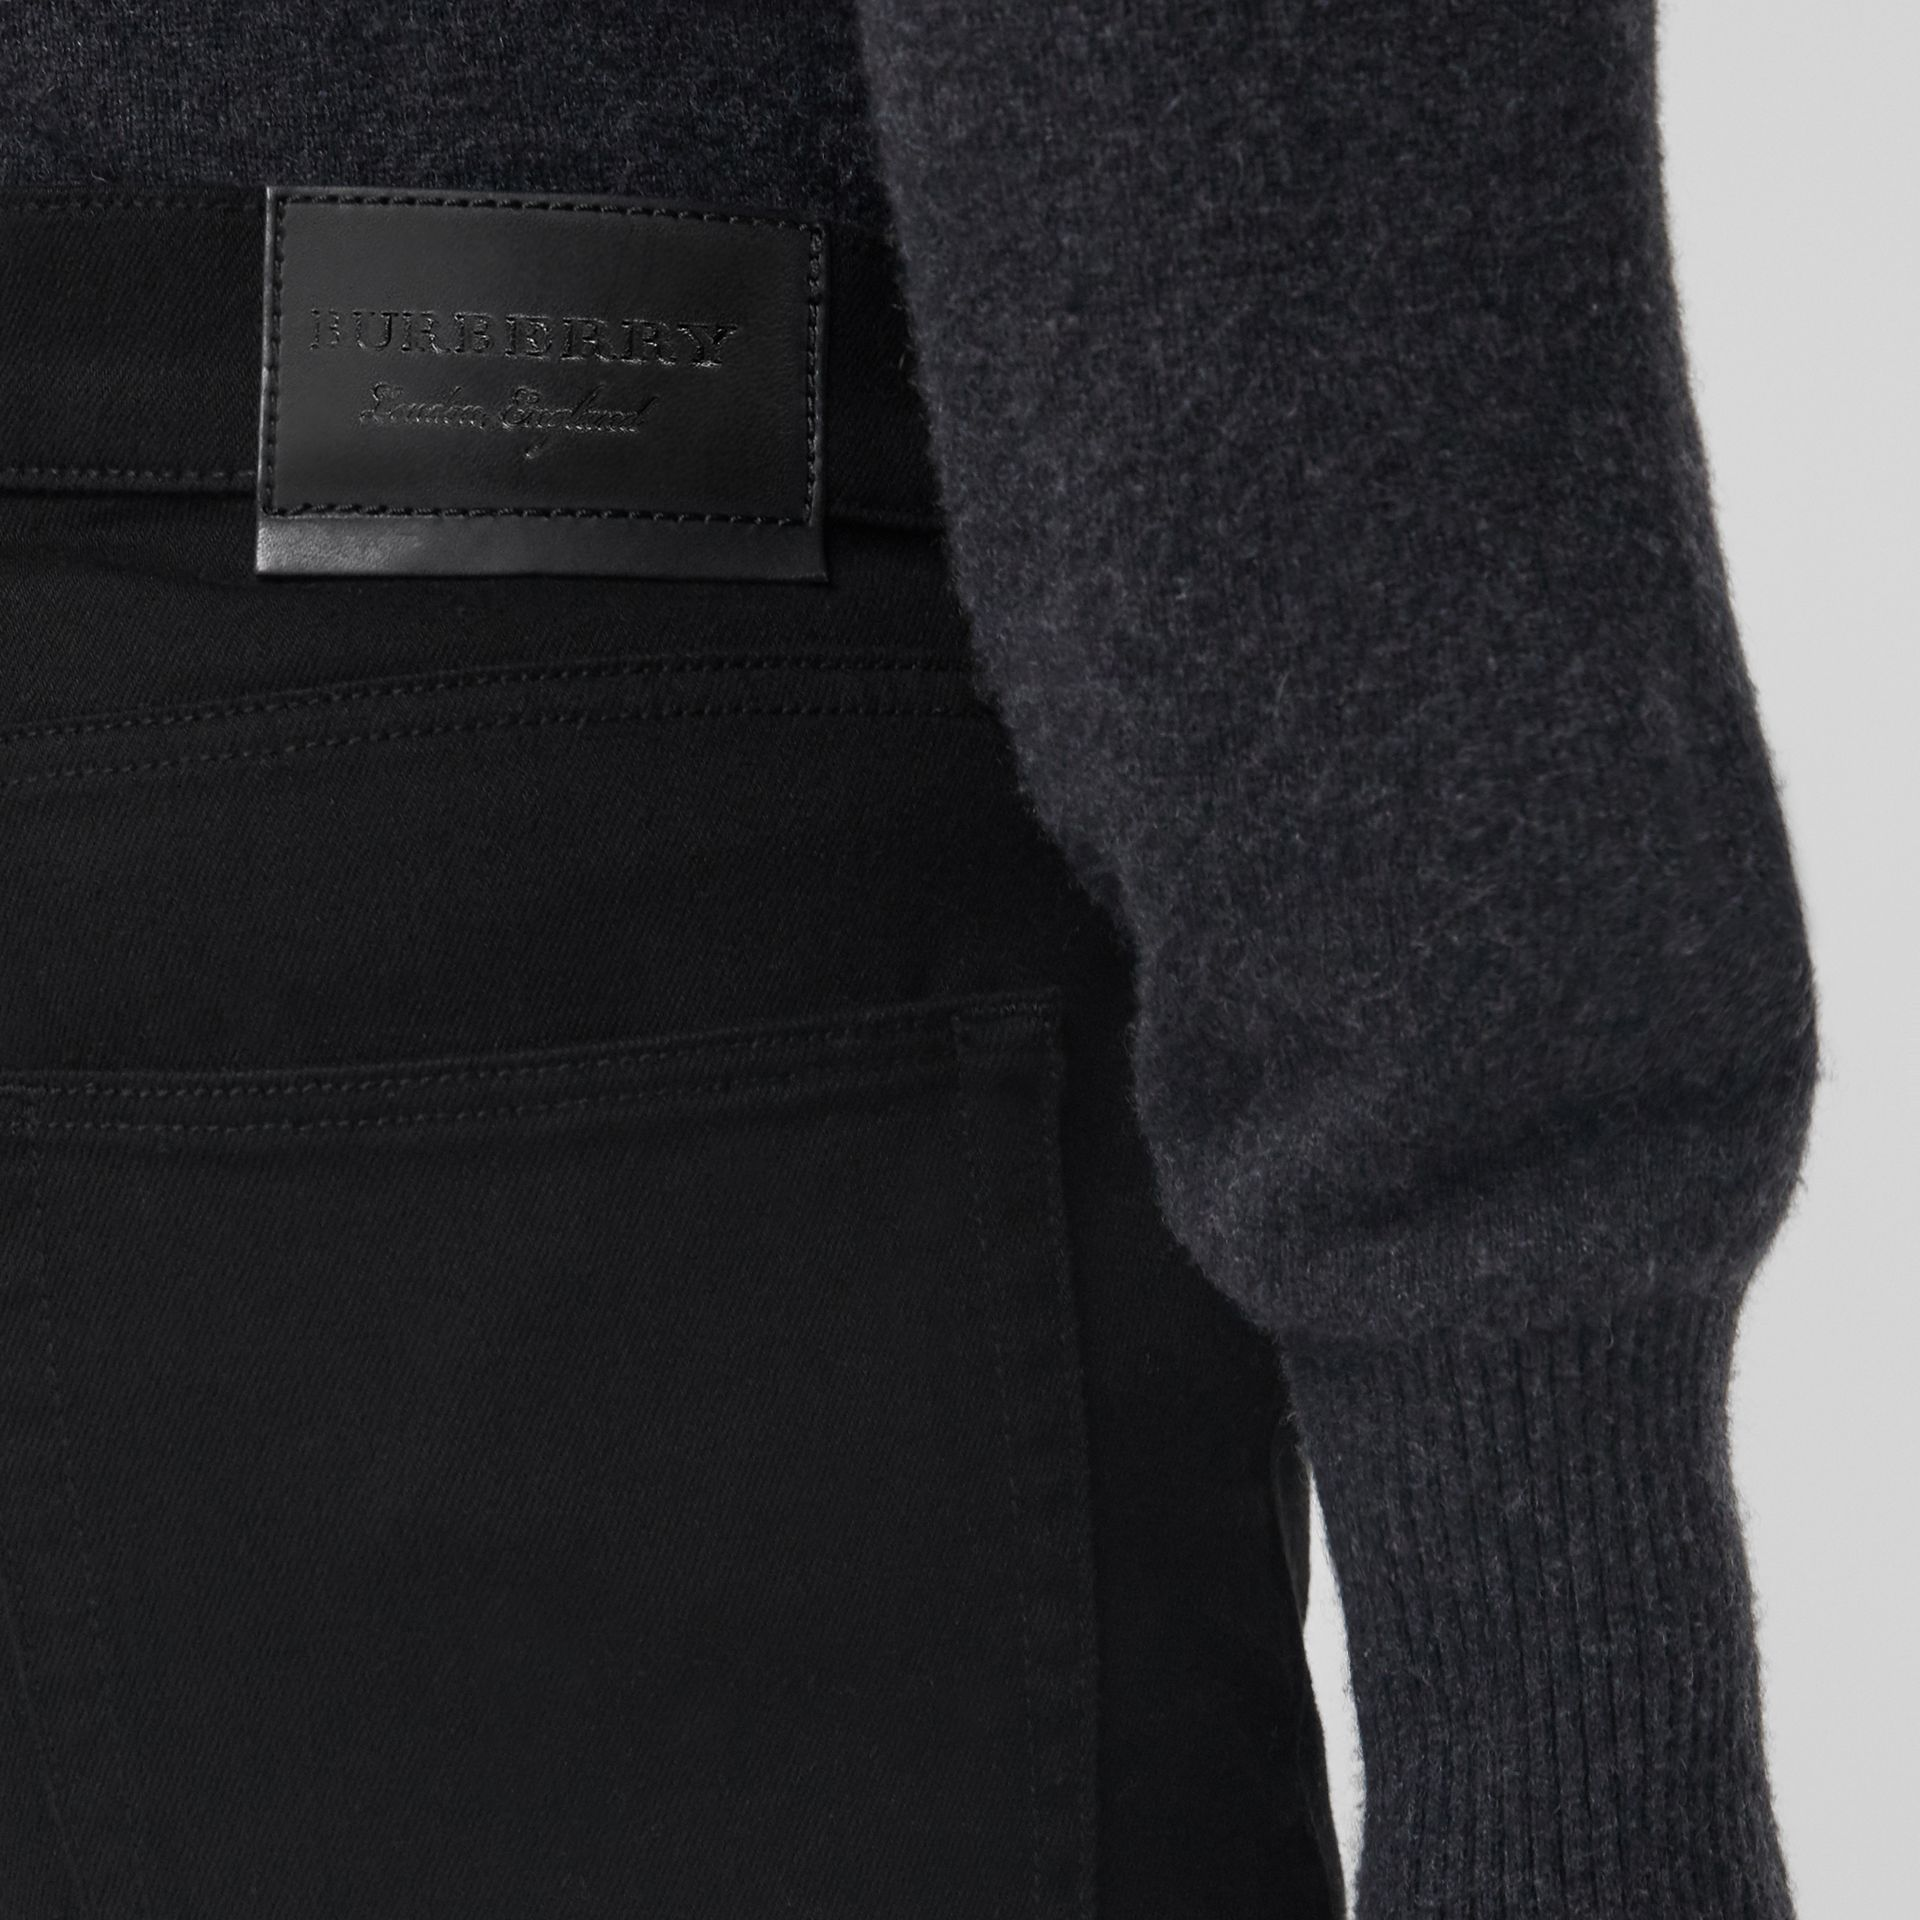 Slim Fit Stretch-denim Jeans in Black - Men | Burberry Hong Kong S.A.R - gallery image 1